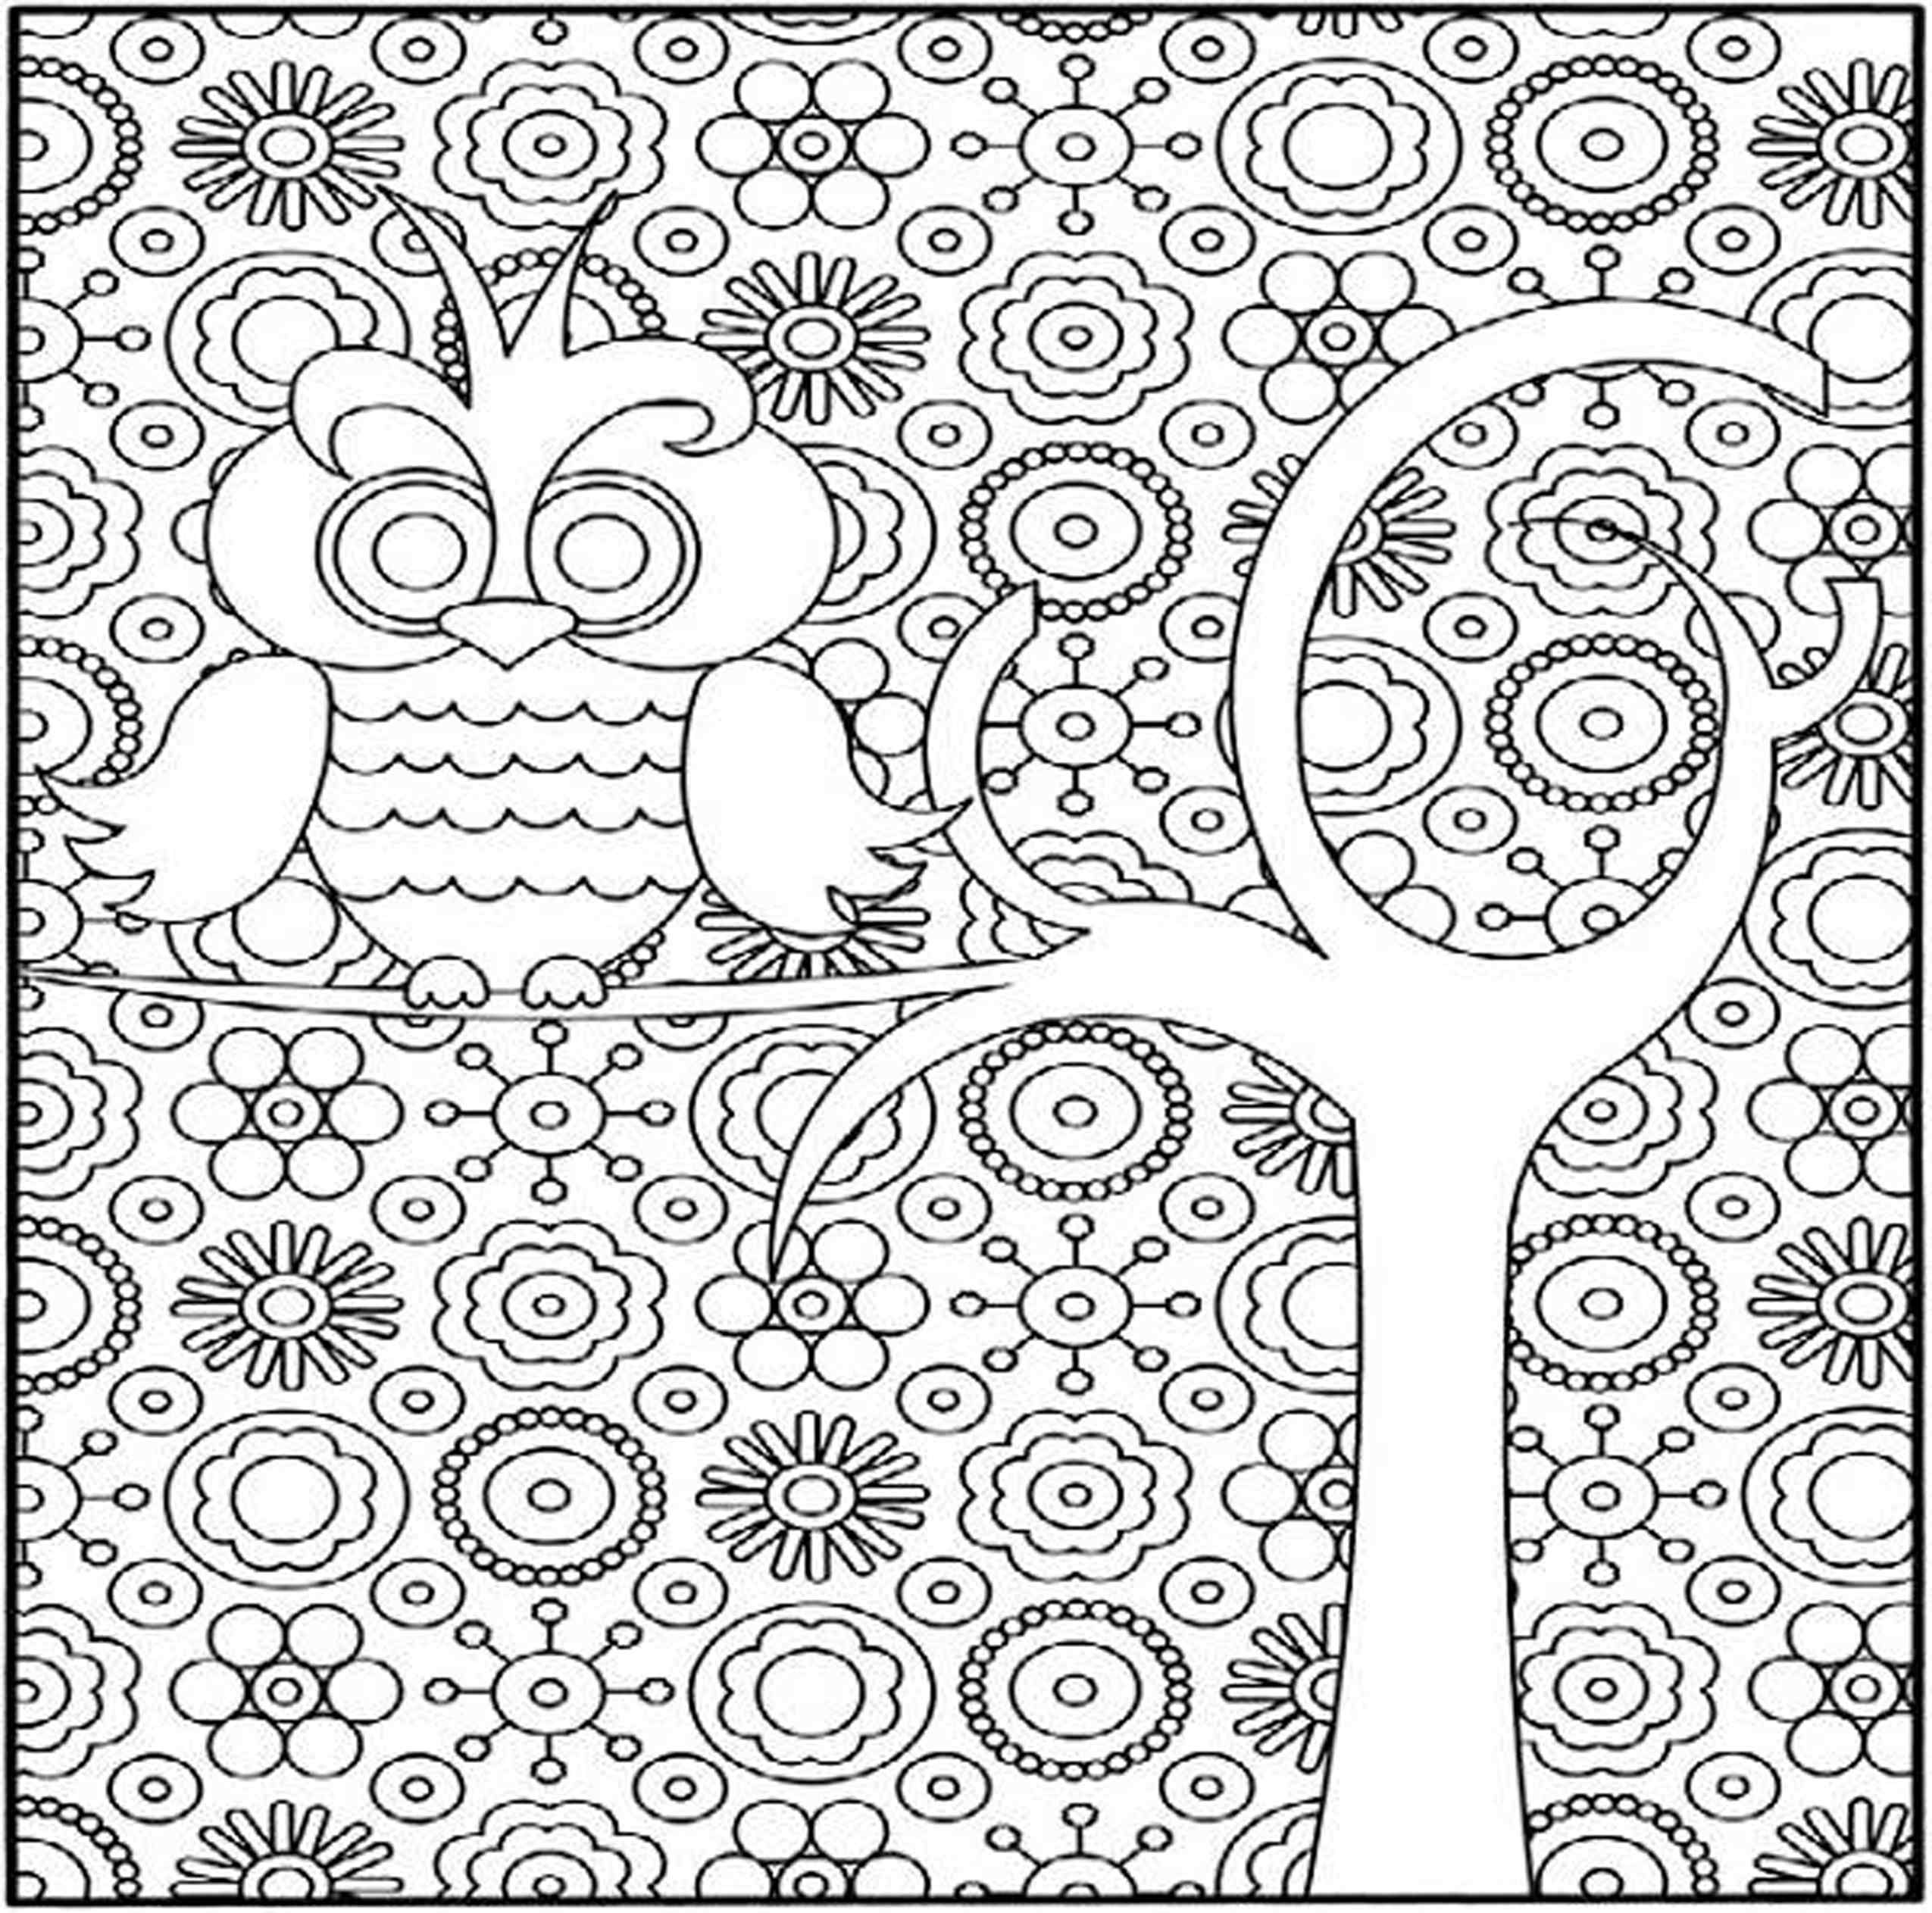 coloring pictures hard hard coloring pages of animals part 2 free resource hard pictures coloring